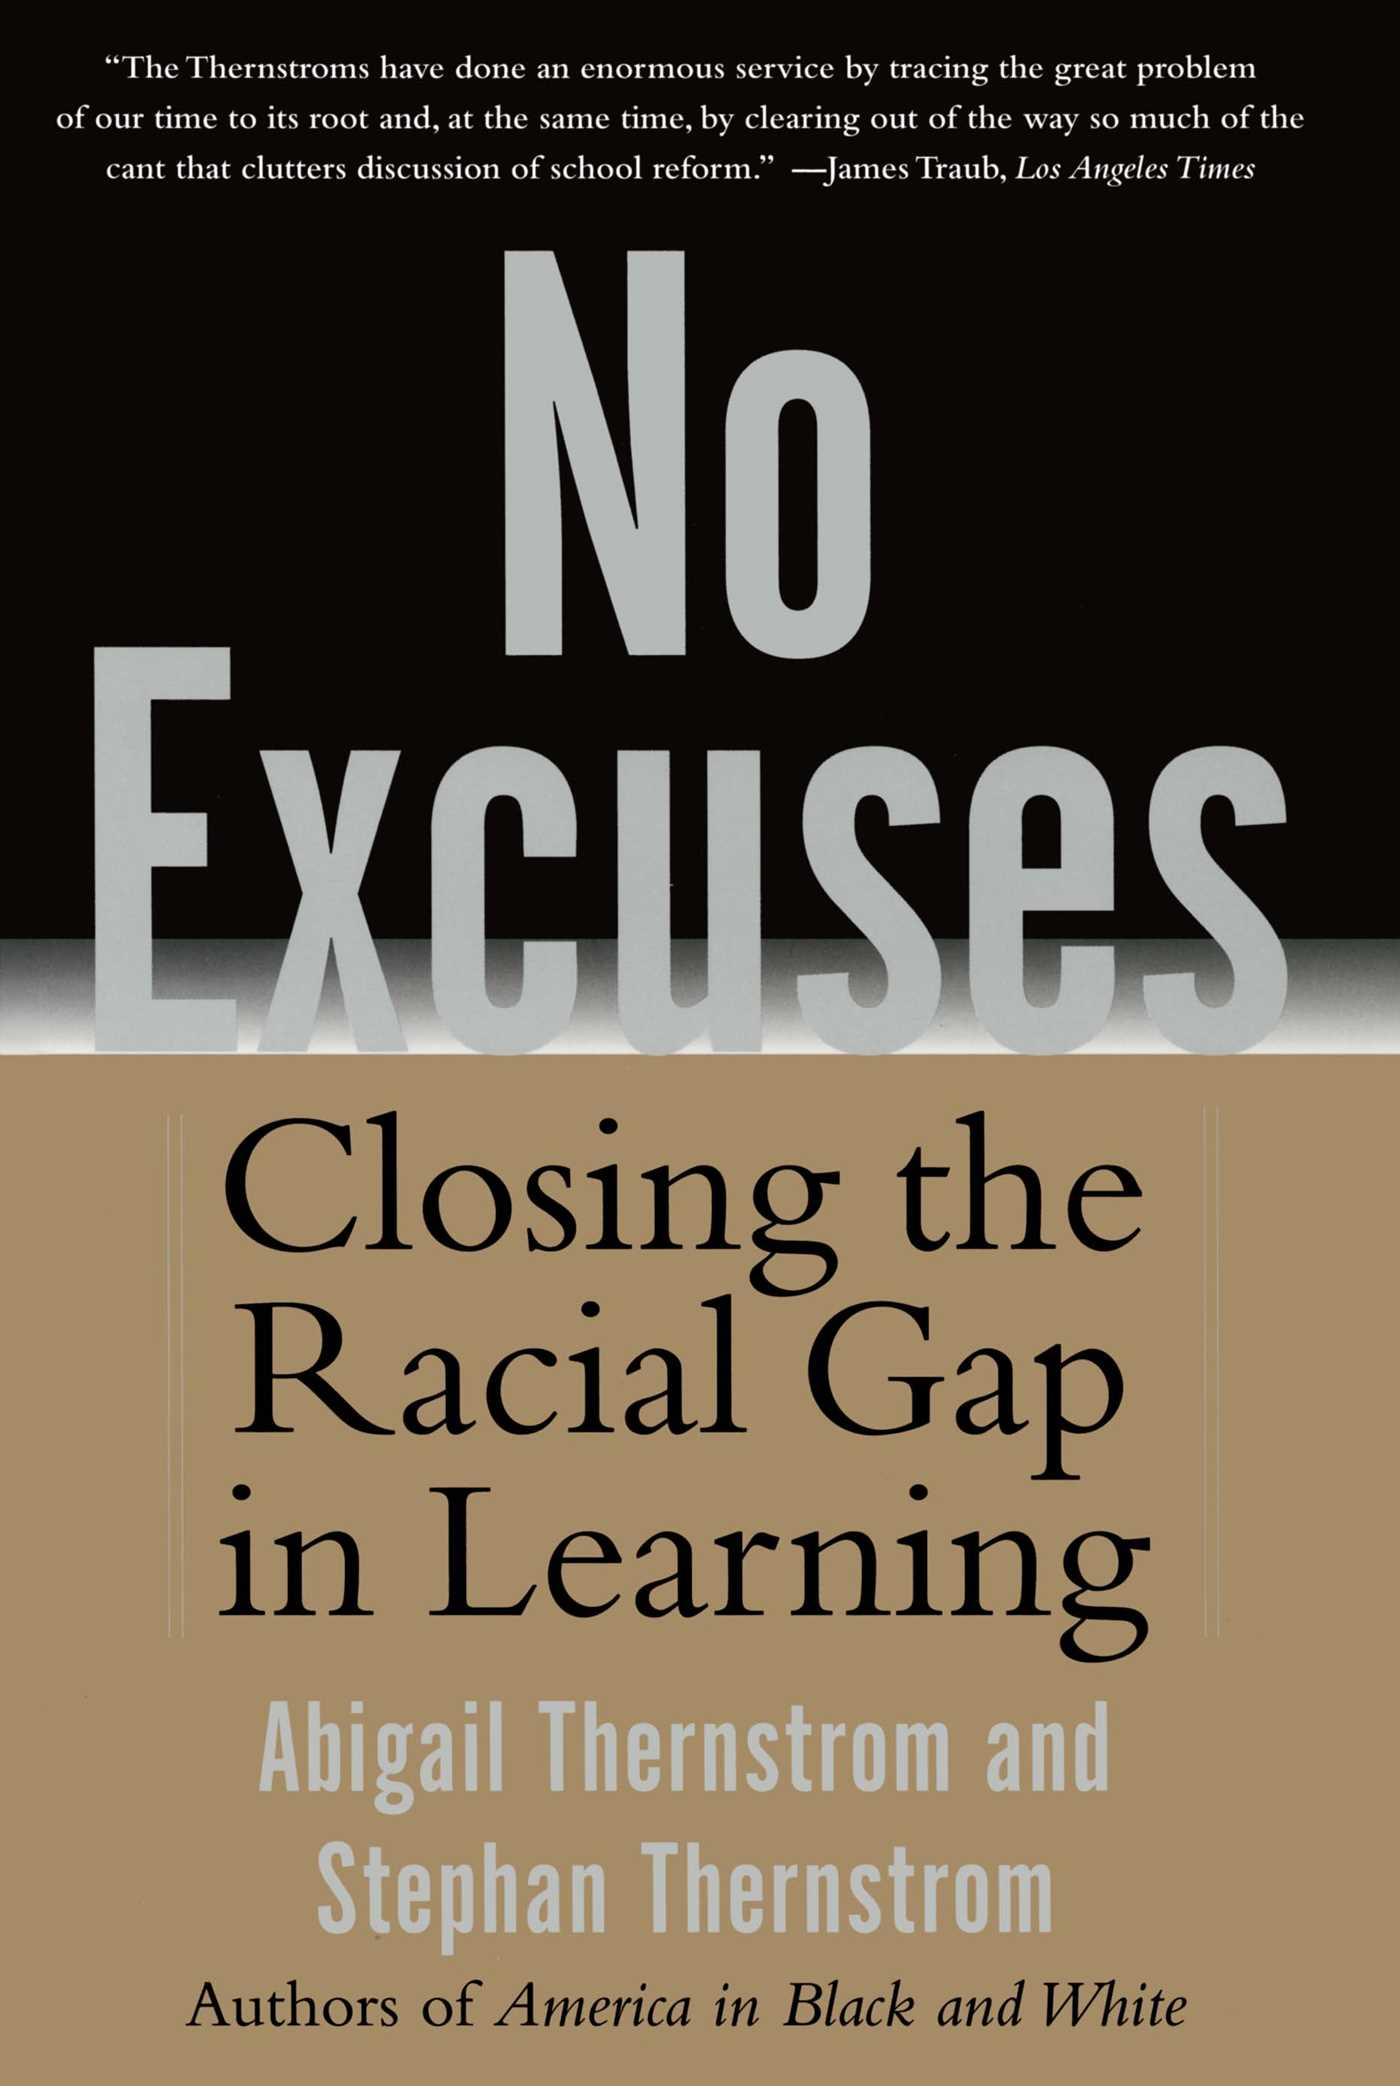 Closing the Racial Gap in Learning